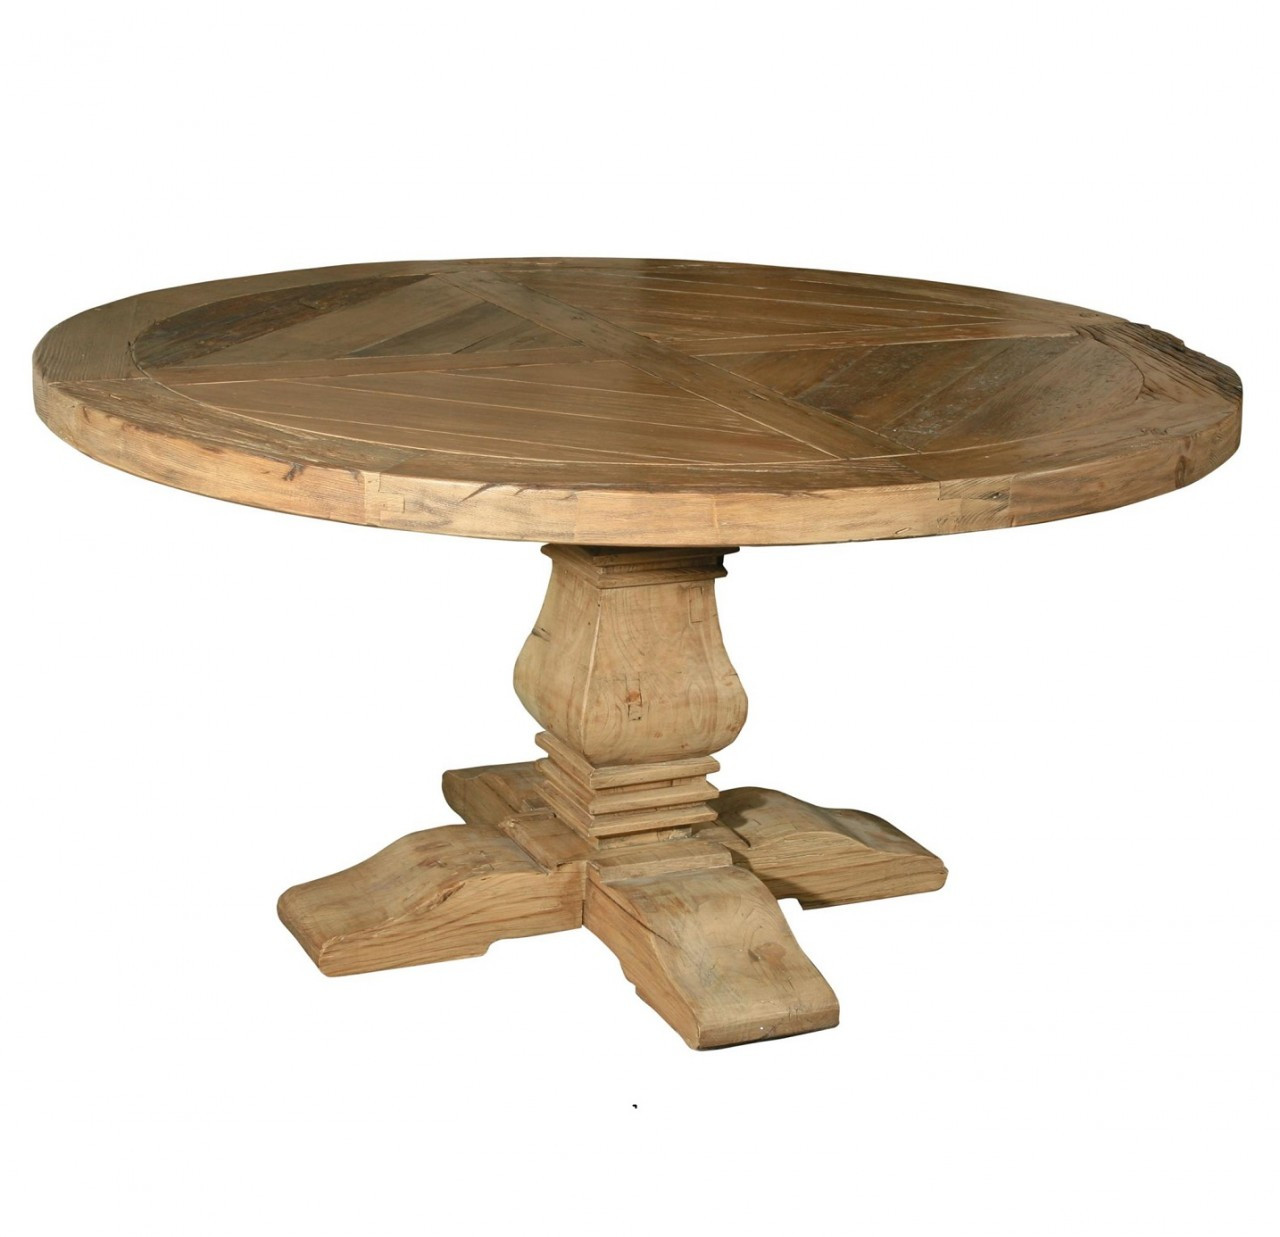 Pedestal 60 round dining table reclaimed wood round for Circular dining table